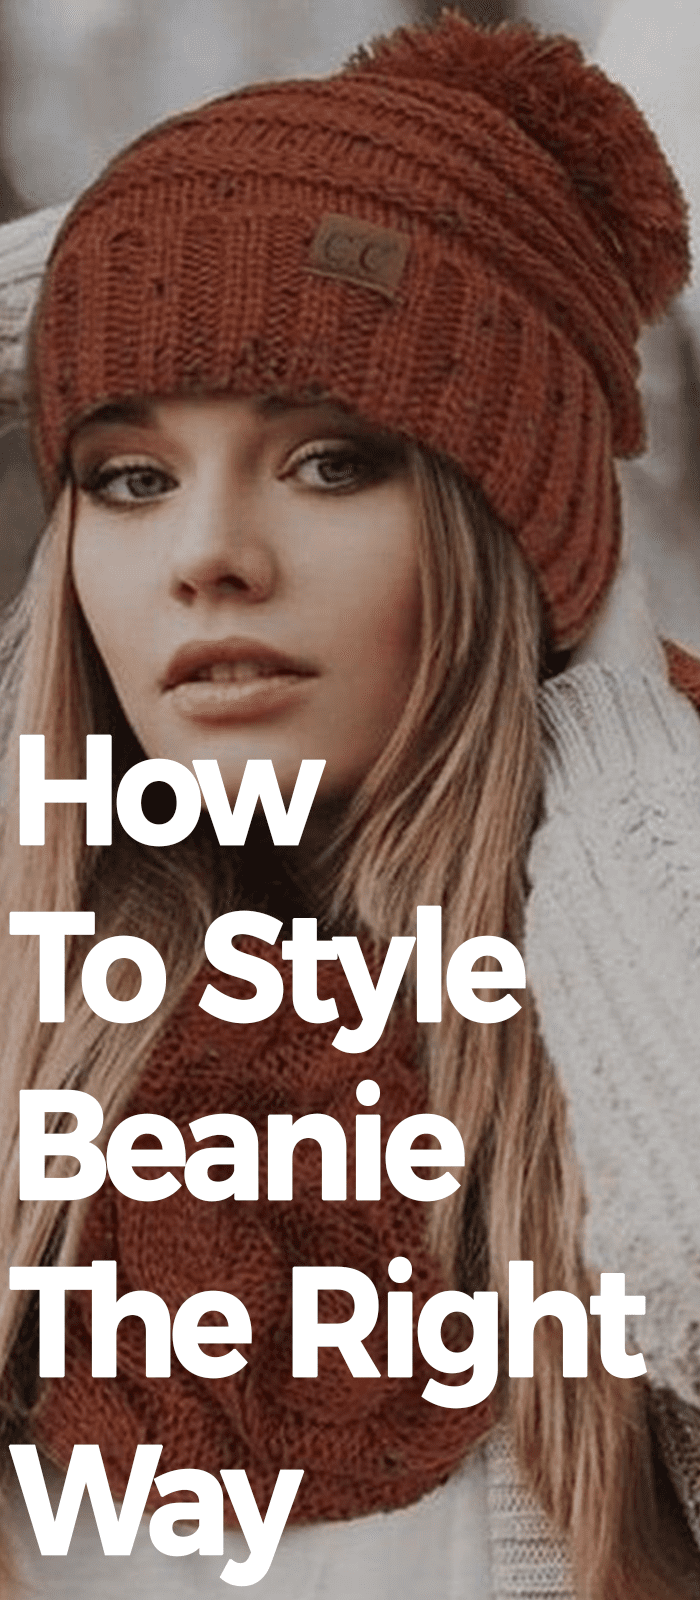 How To Style Beanie The Right Way.